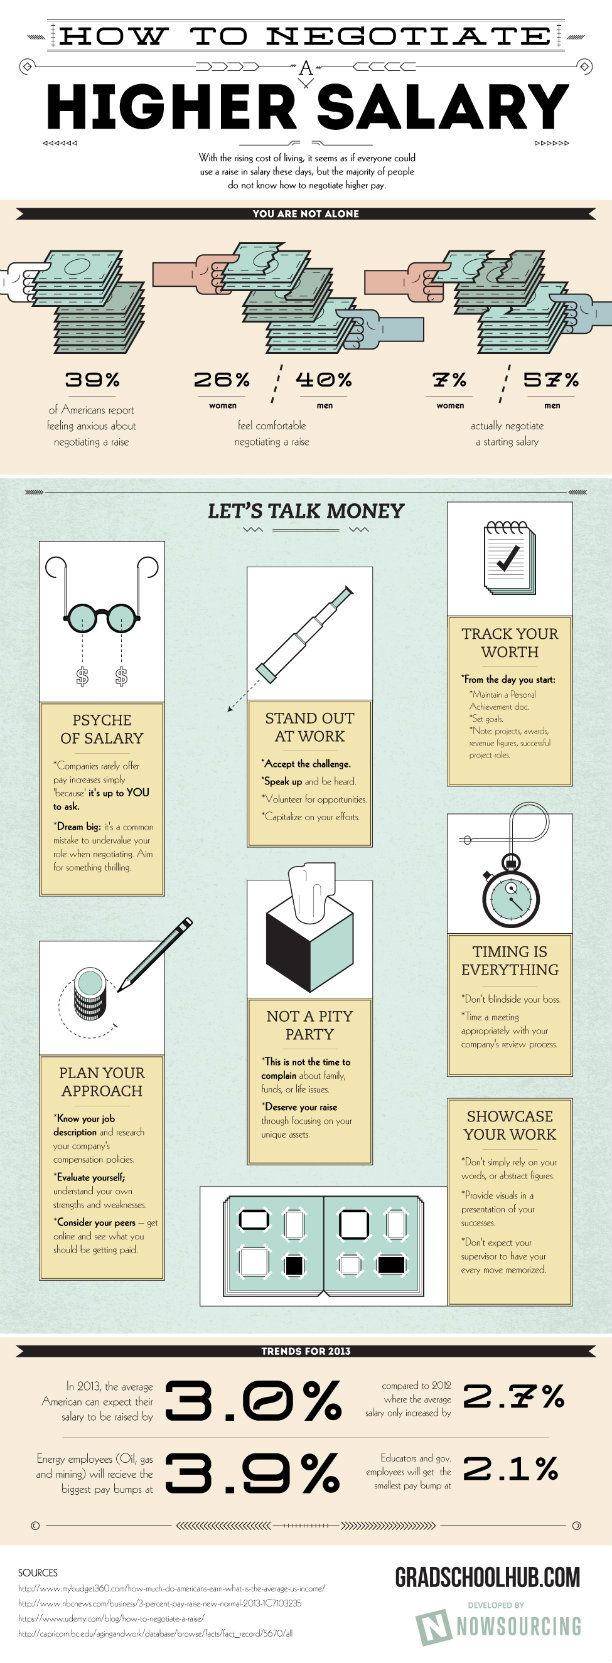 17 best images about job search infographics do you yourself kind of restrained or weak whenever you think of negotiating a raise this infographic from gradschoolhub came to learn you how